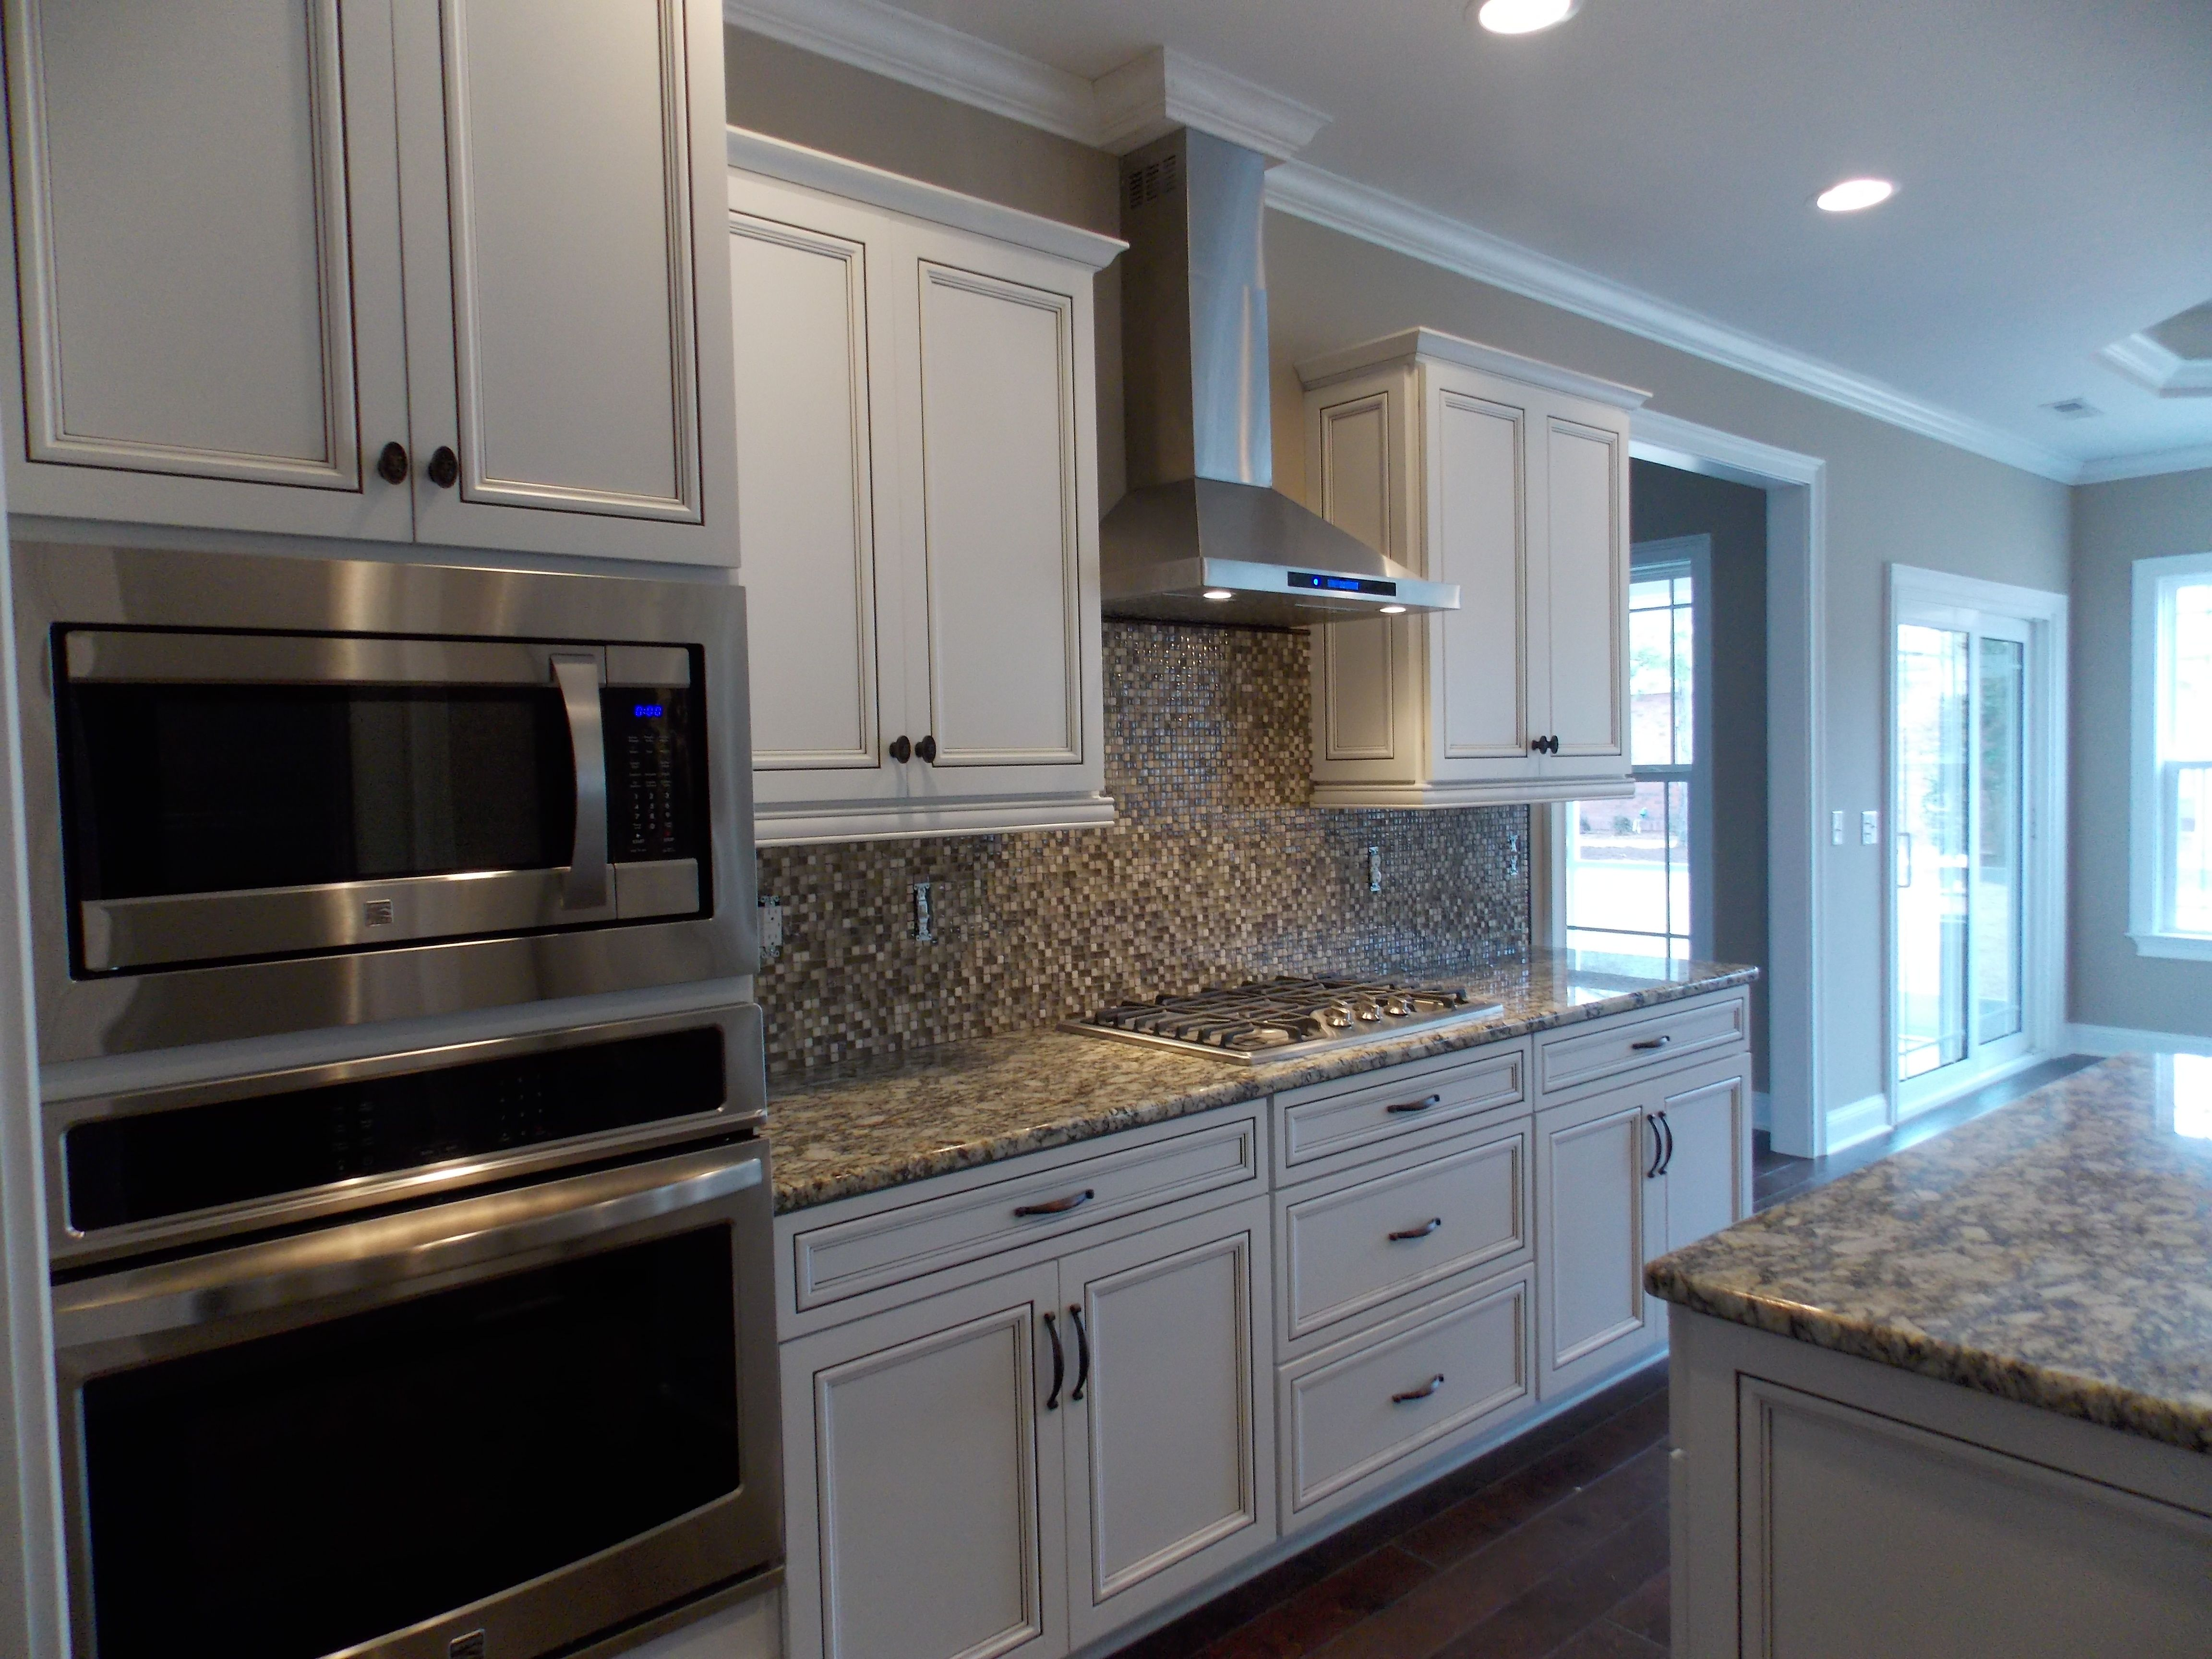 beautiful alabaster cabinets with chocolate glaze compliments the beautiful alabaster cabinets with chocolate glaze compliments the hardwood floors and appliances